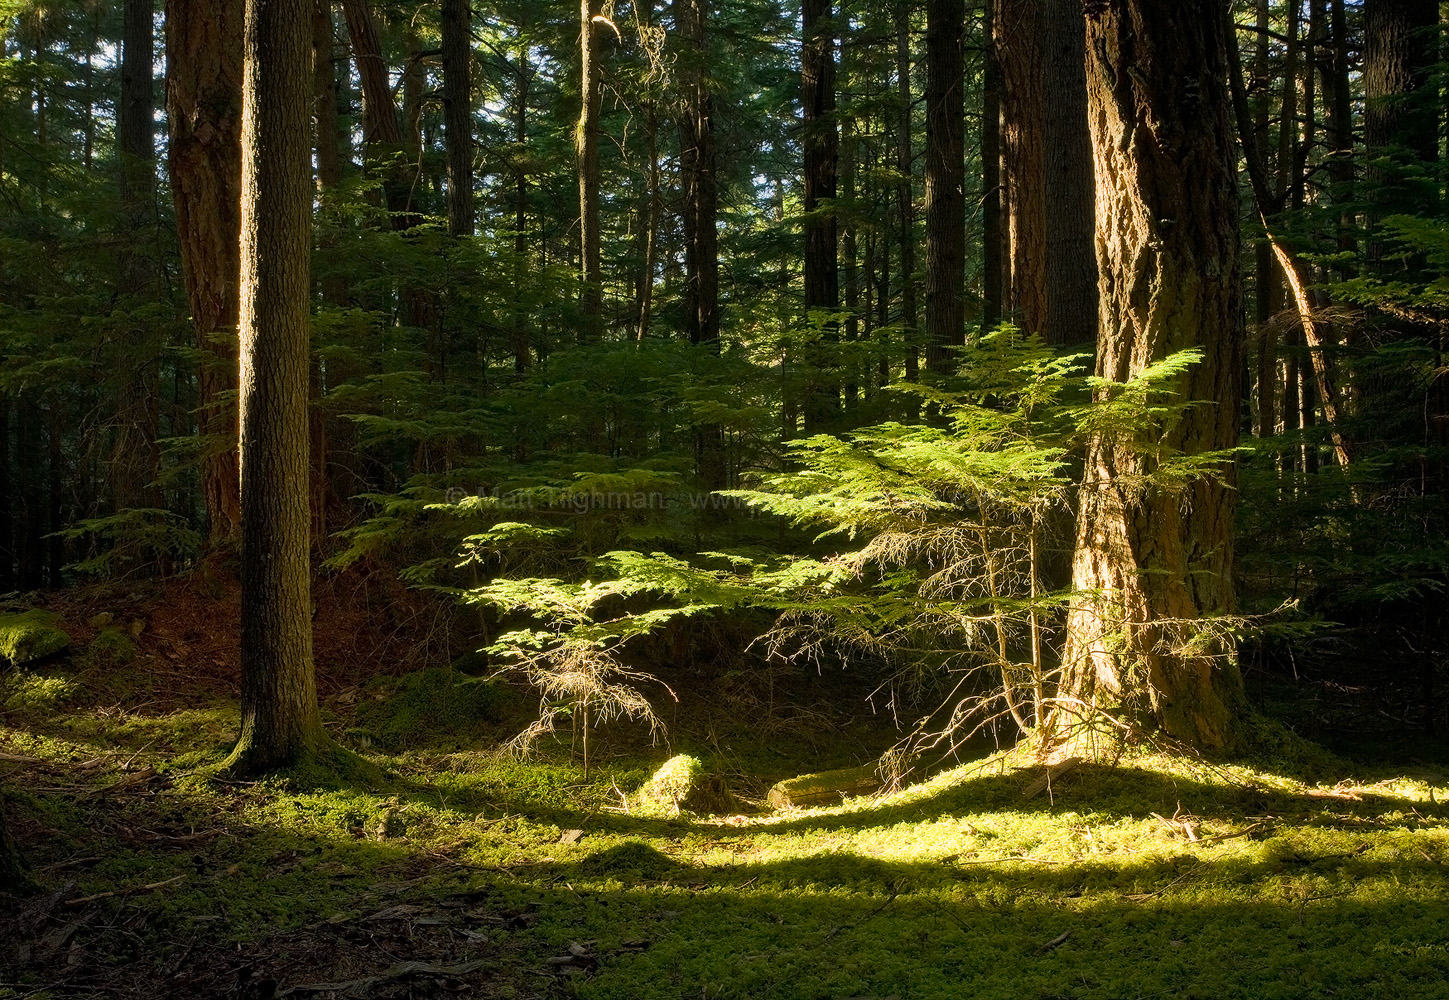 Fine art stock photograph of sunset light in the forests of Mount Constitution, on Orcas Island in Washington state's San Juan Islands archipelago.